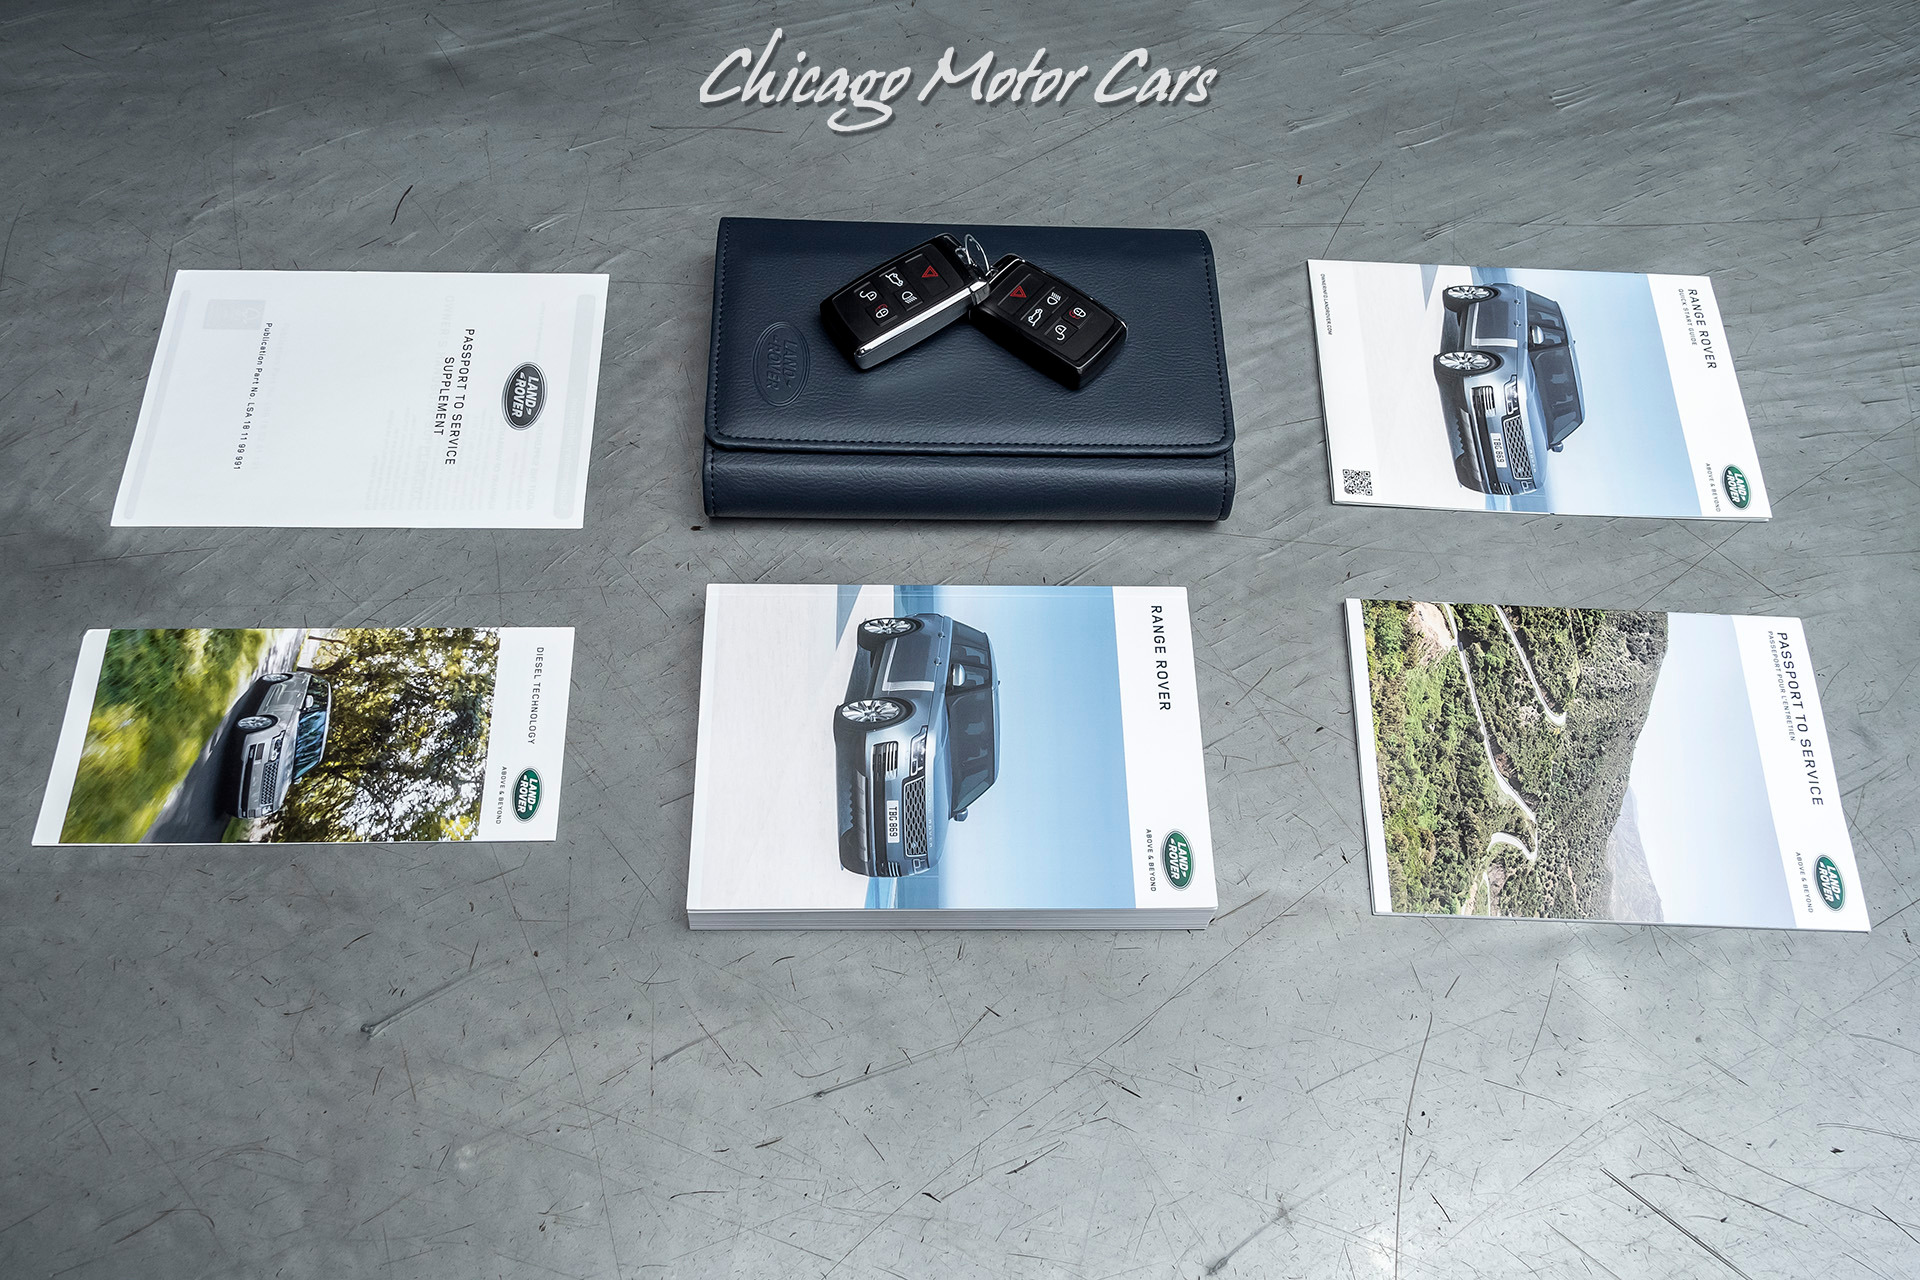 Used-2019-Land-Rover-Range-Rover-Supercharged-Only-7800-Miles-SUV-Loaded-RARE-Color-Combo